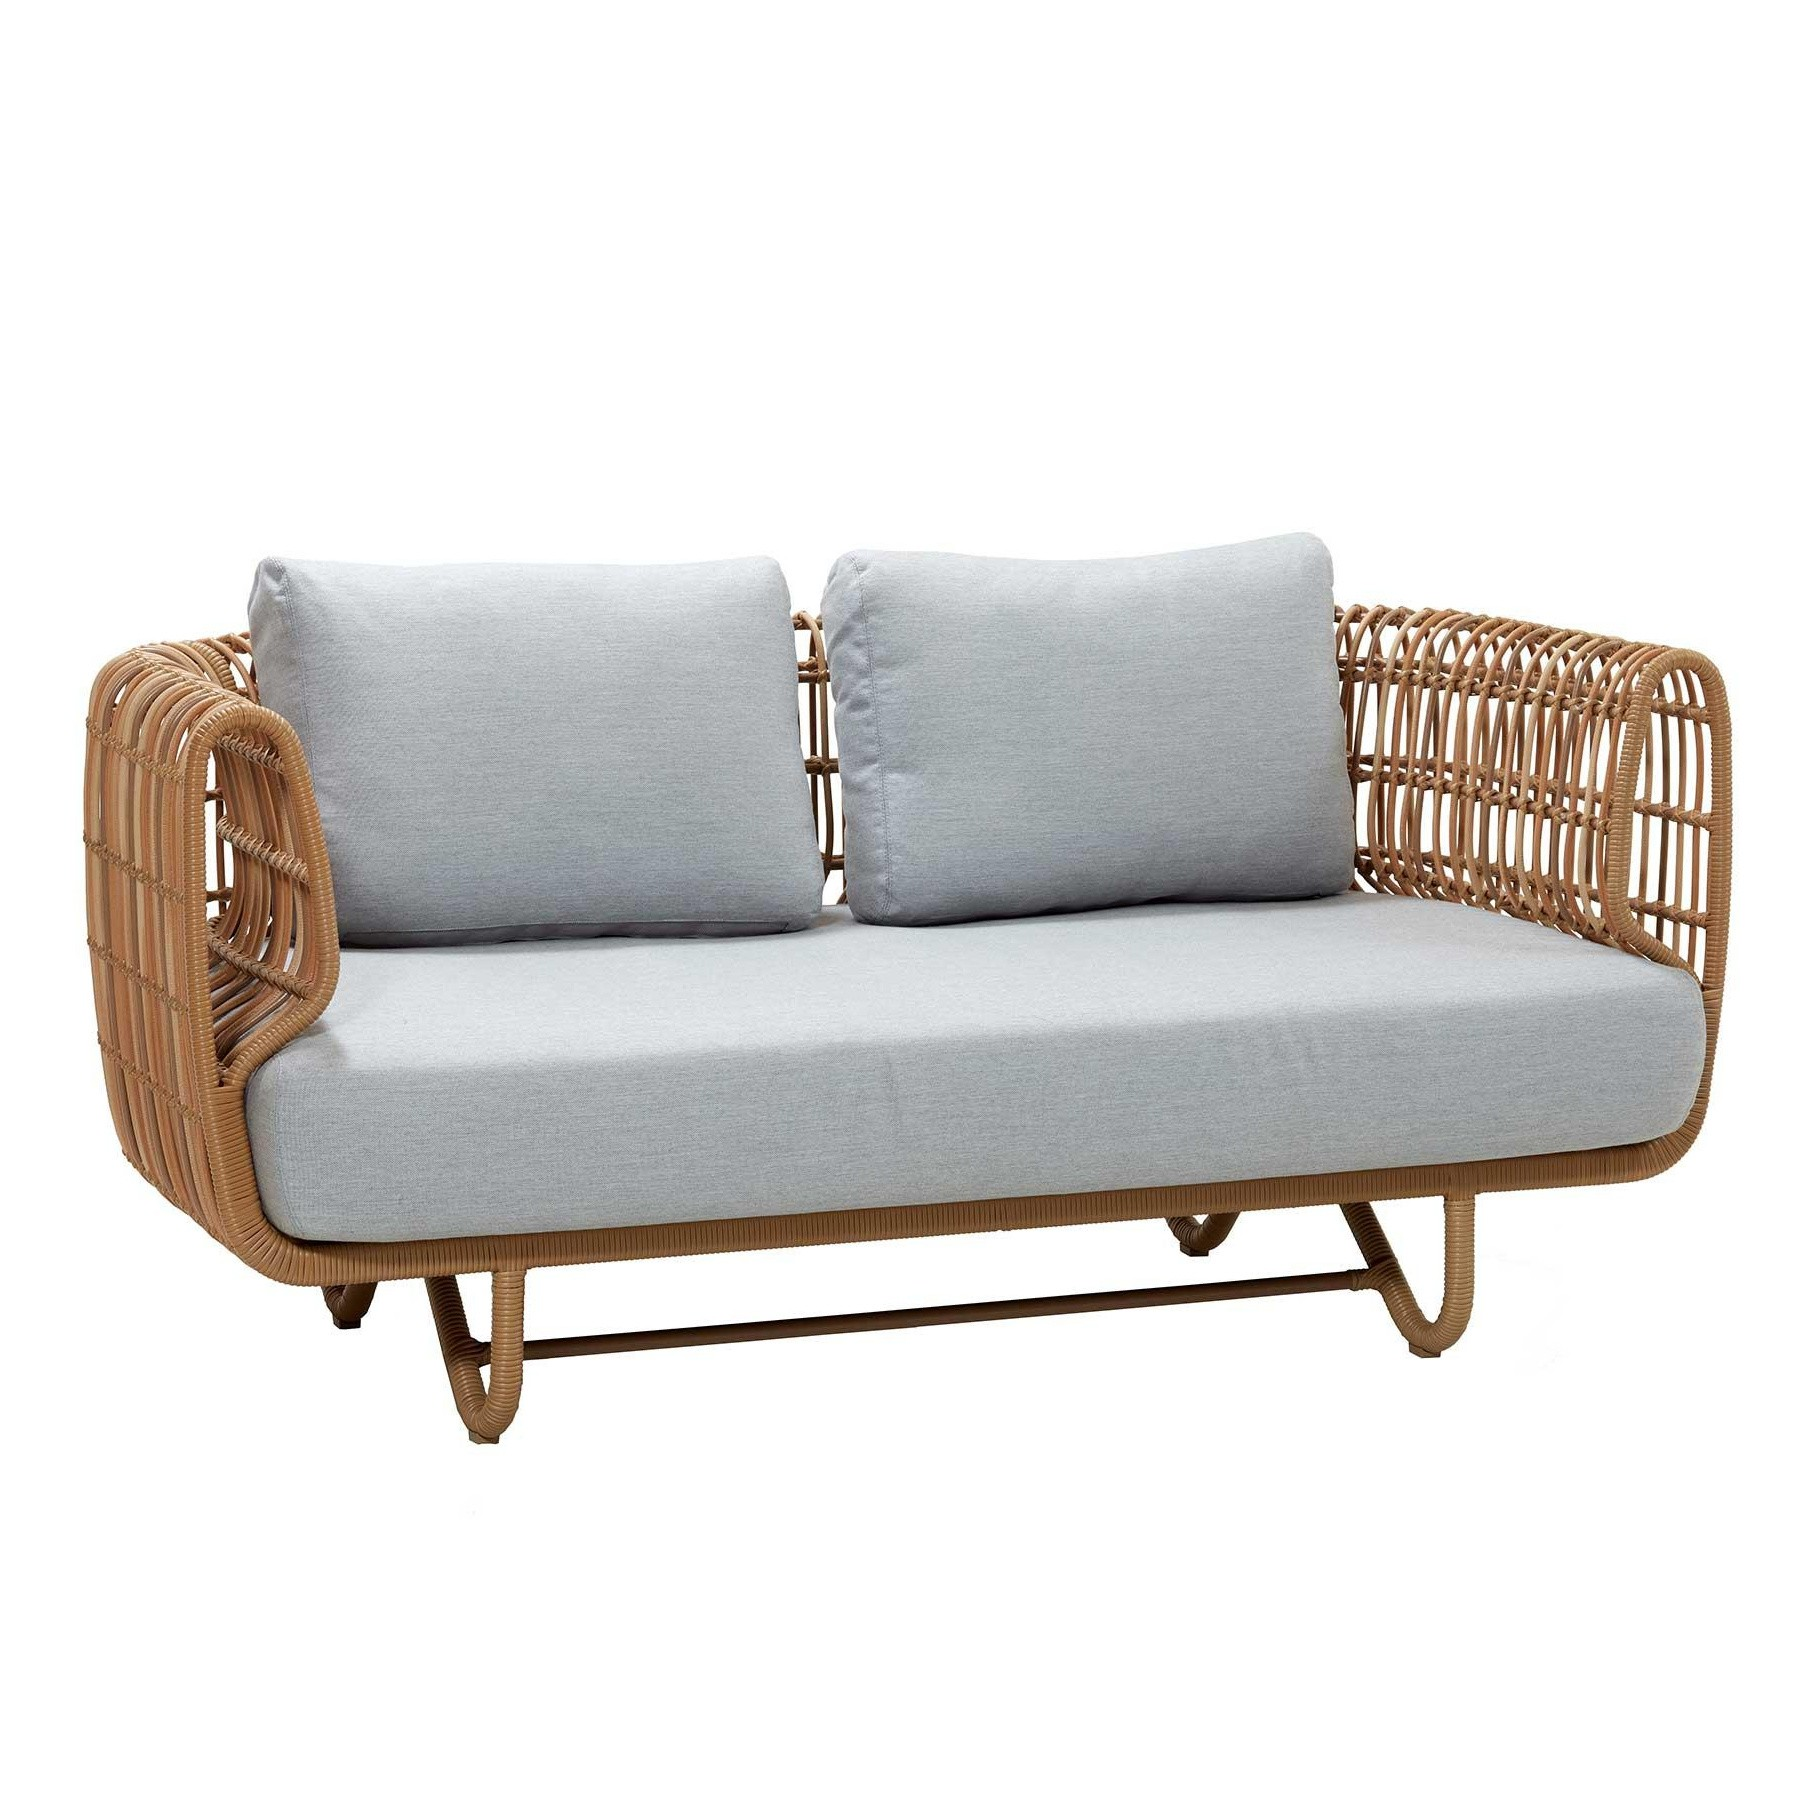 Lounge Sofa 2 Sitzer Outdoor Cane-line Nest Outdoor Sofa 2 Seater | Ambientedirect